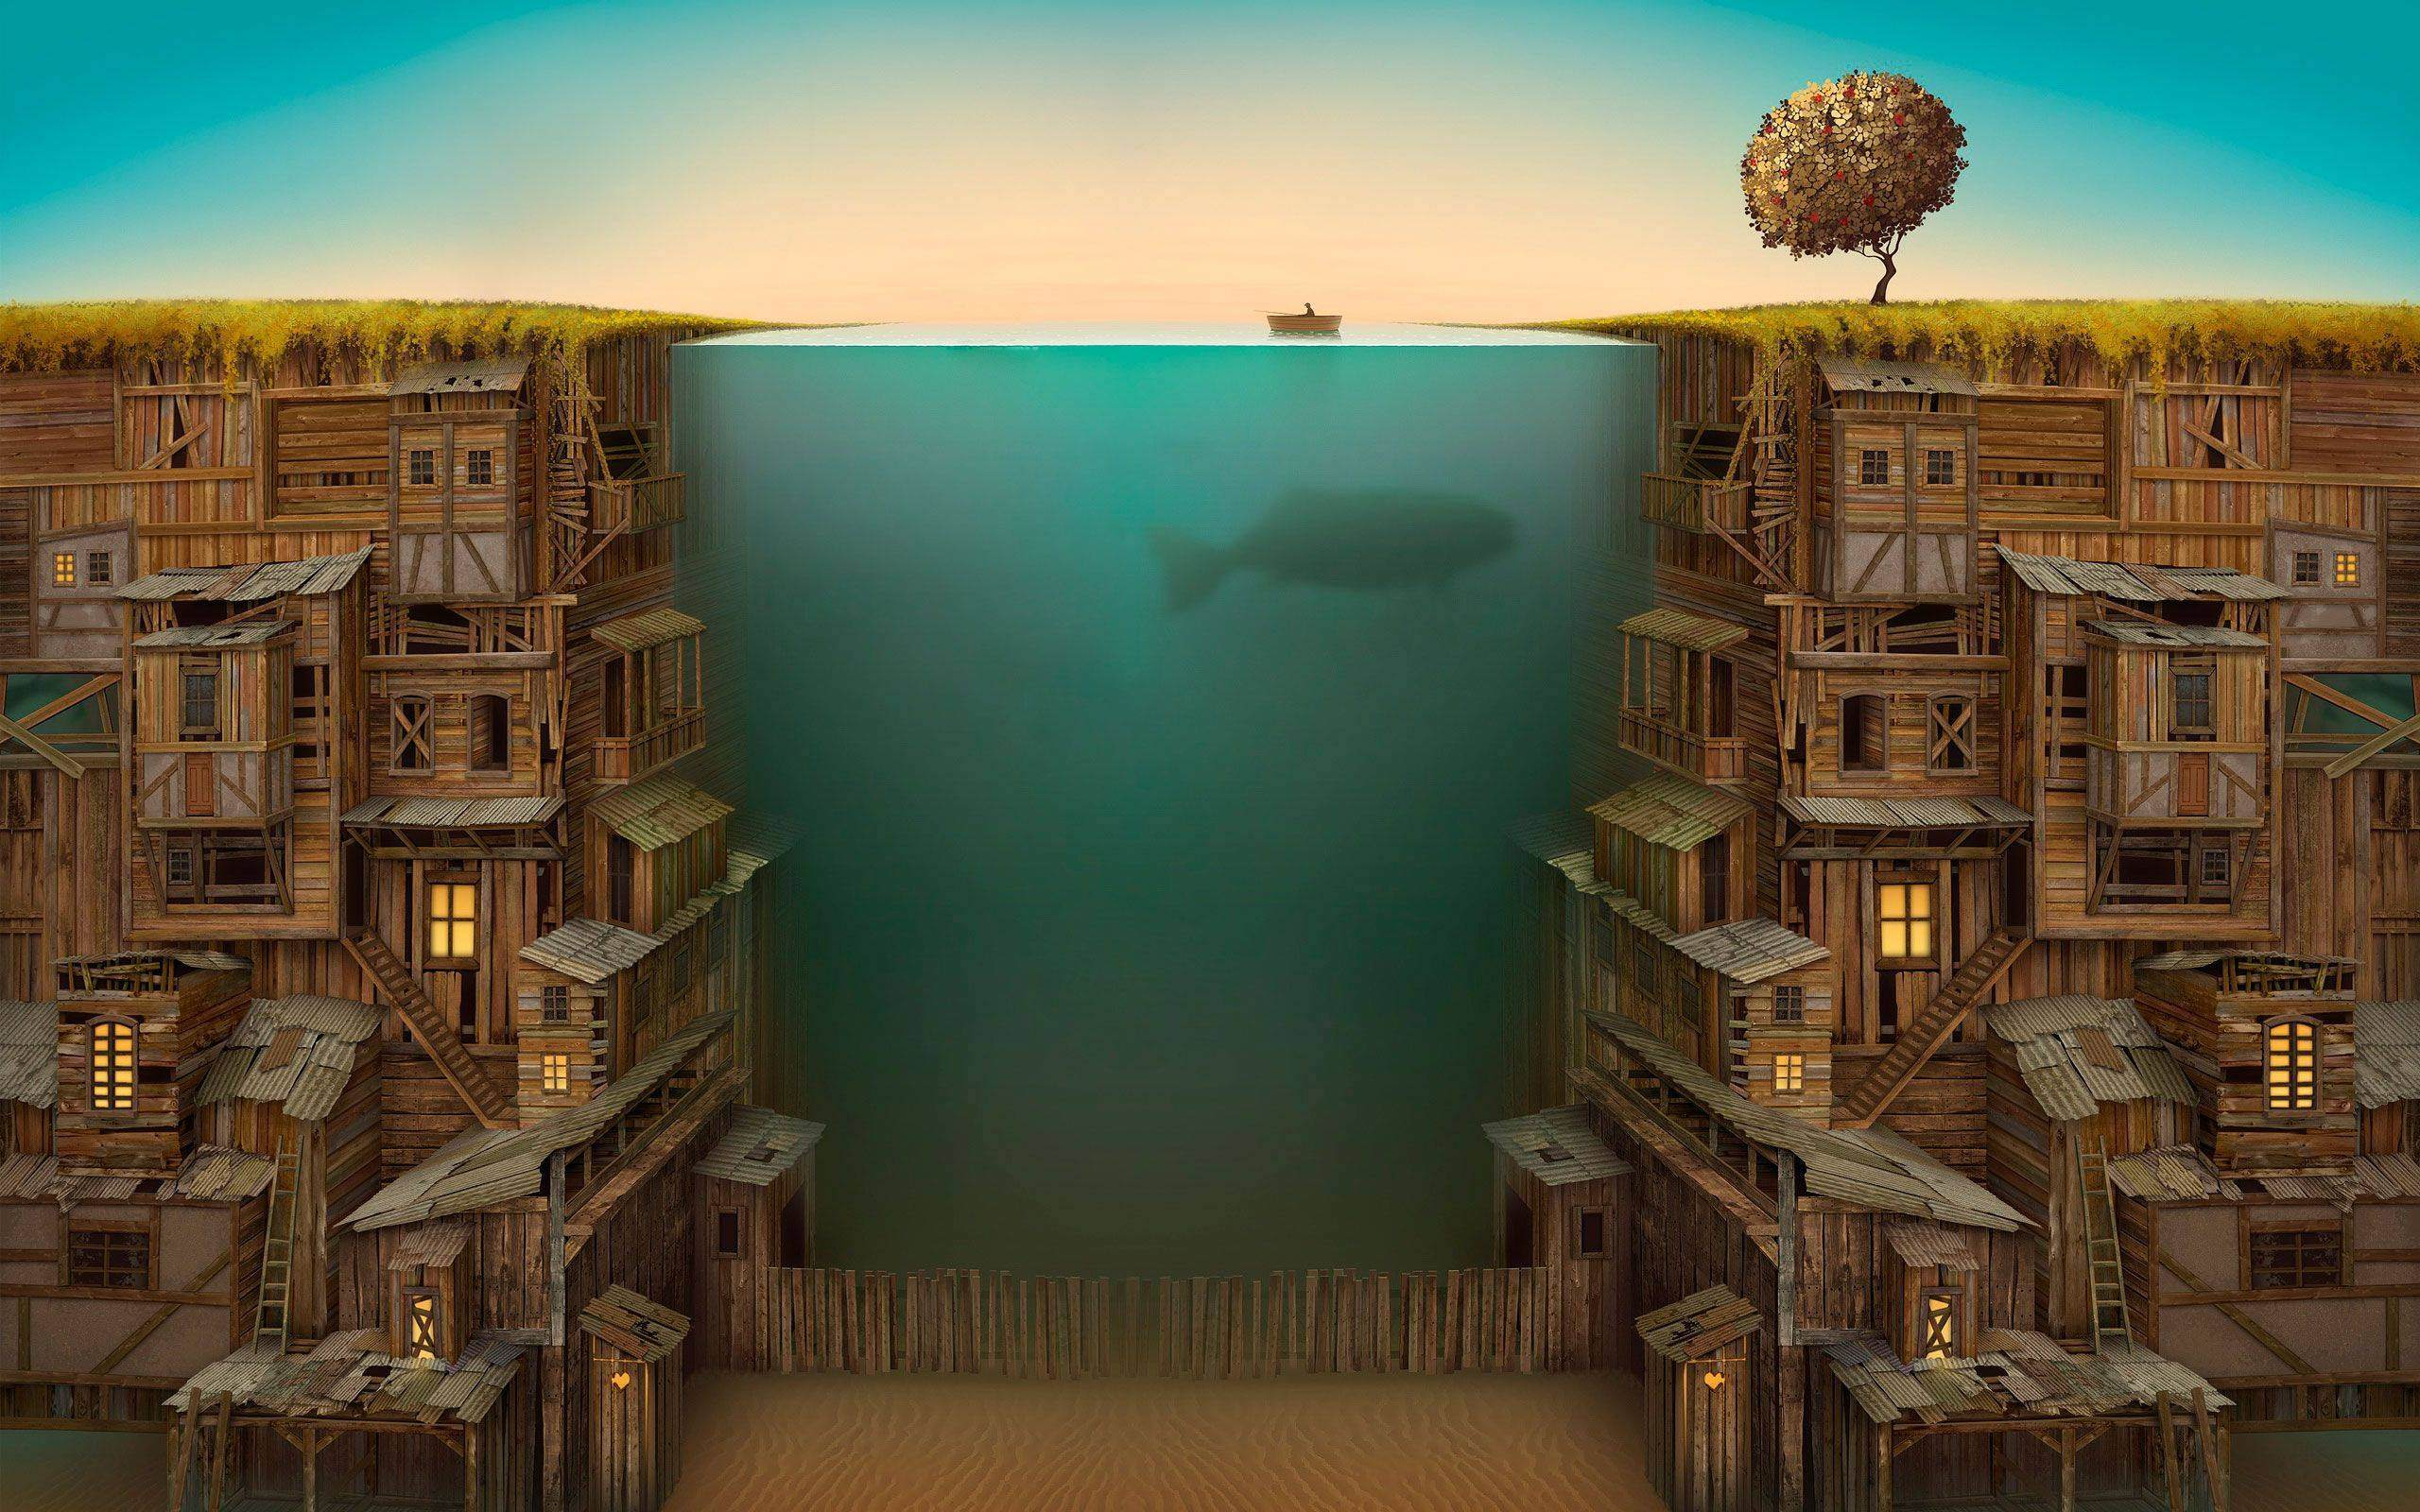 Ocean Between a Wooden City